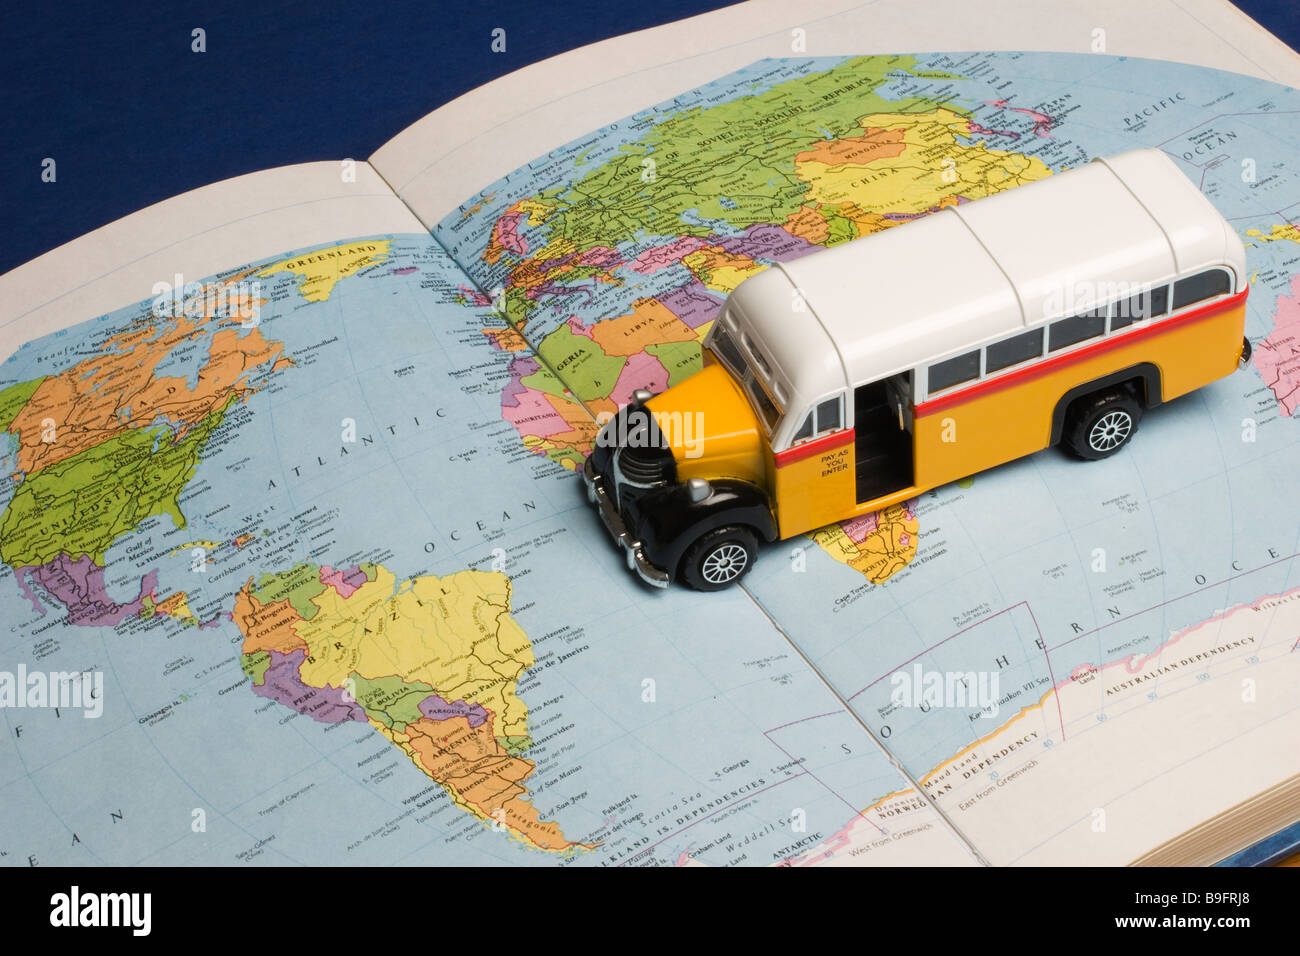 A toy bus on a world atlas book map stock photo 23090096 alamy a toy bus on a world atlas book map gumiabroncs Image collections